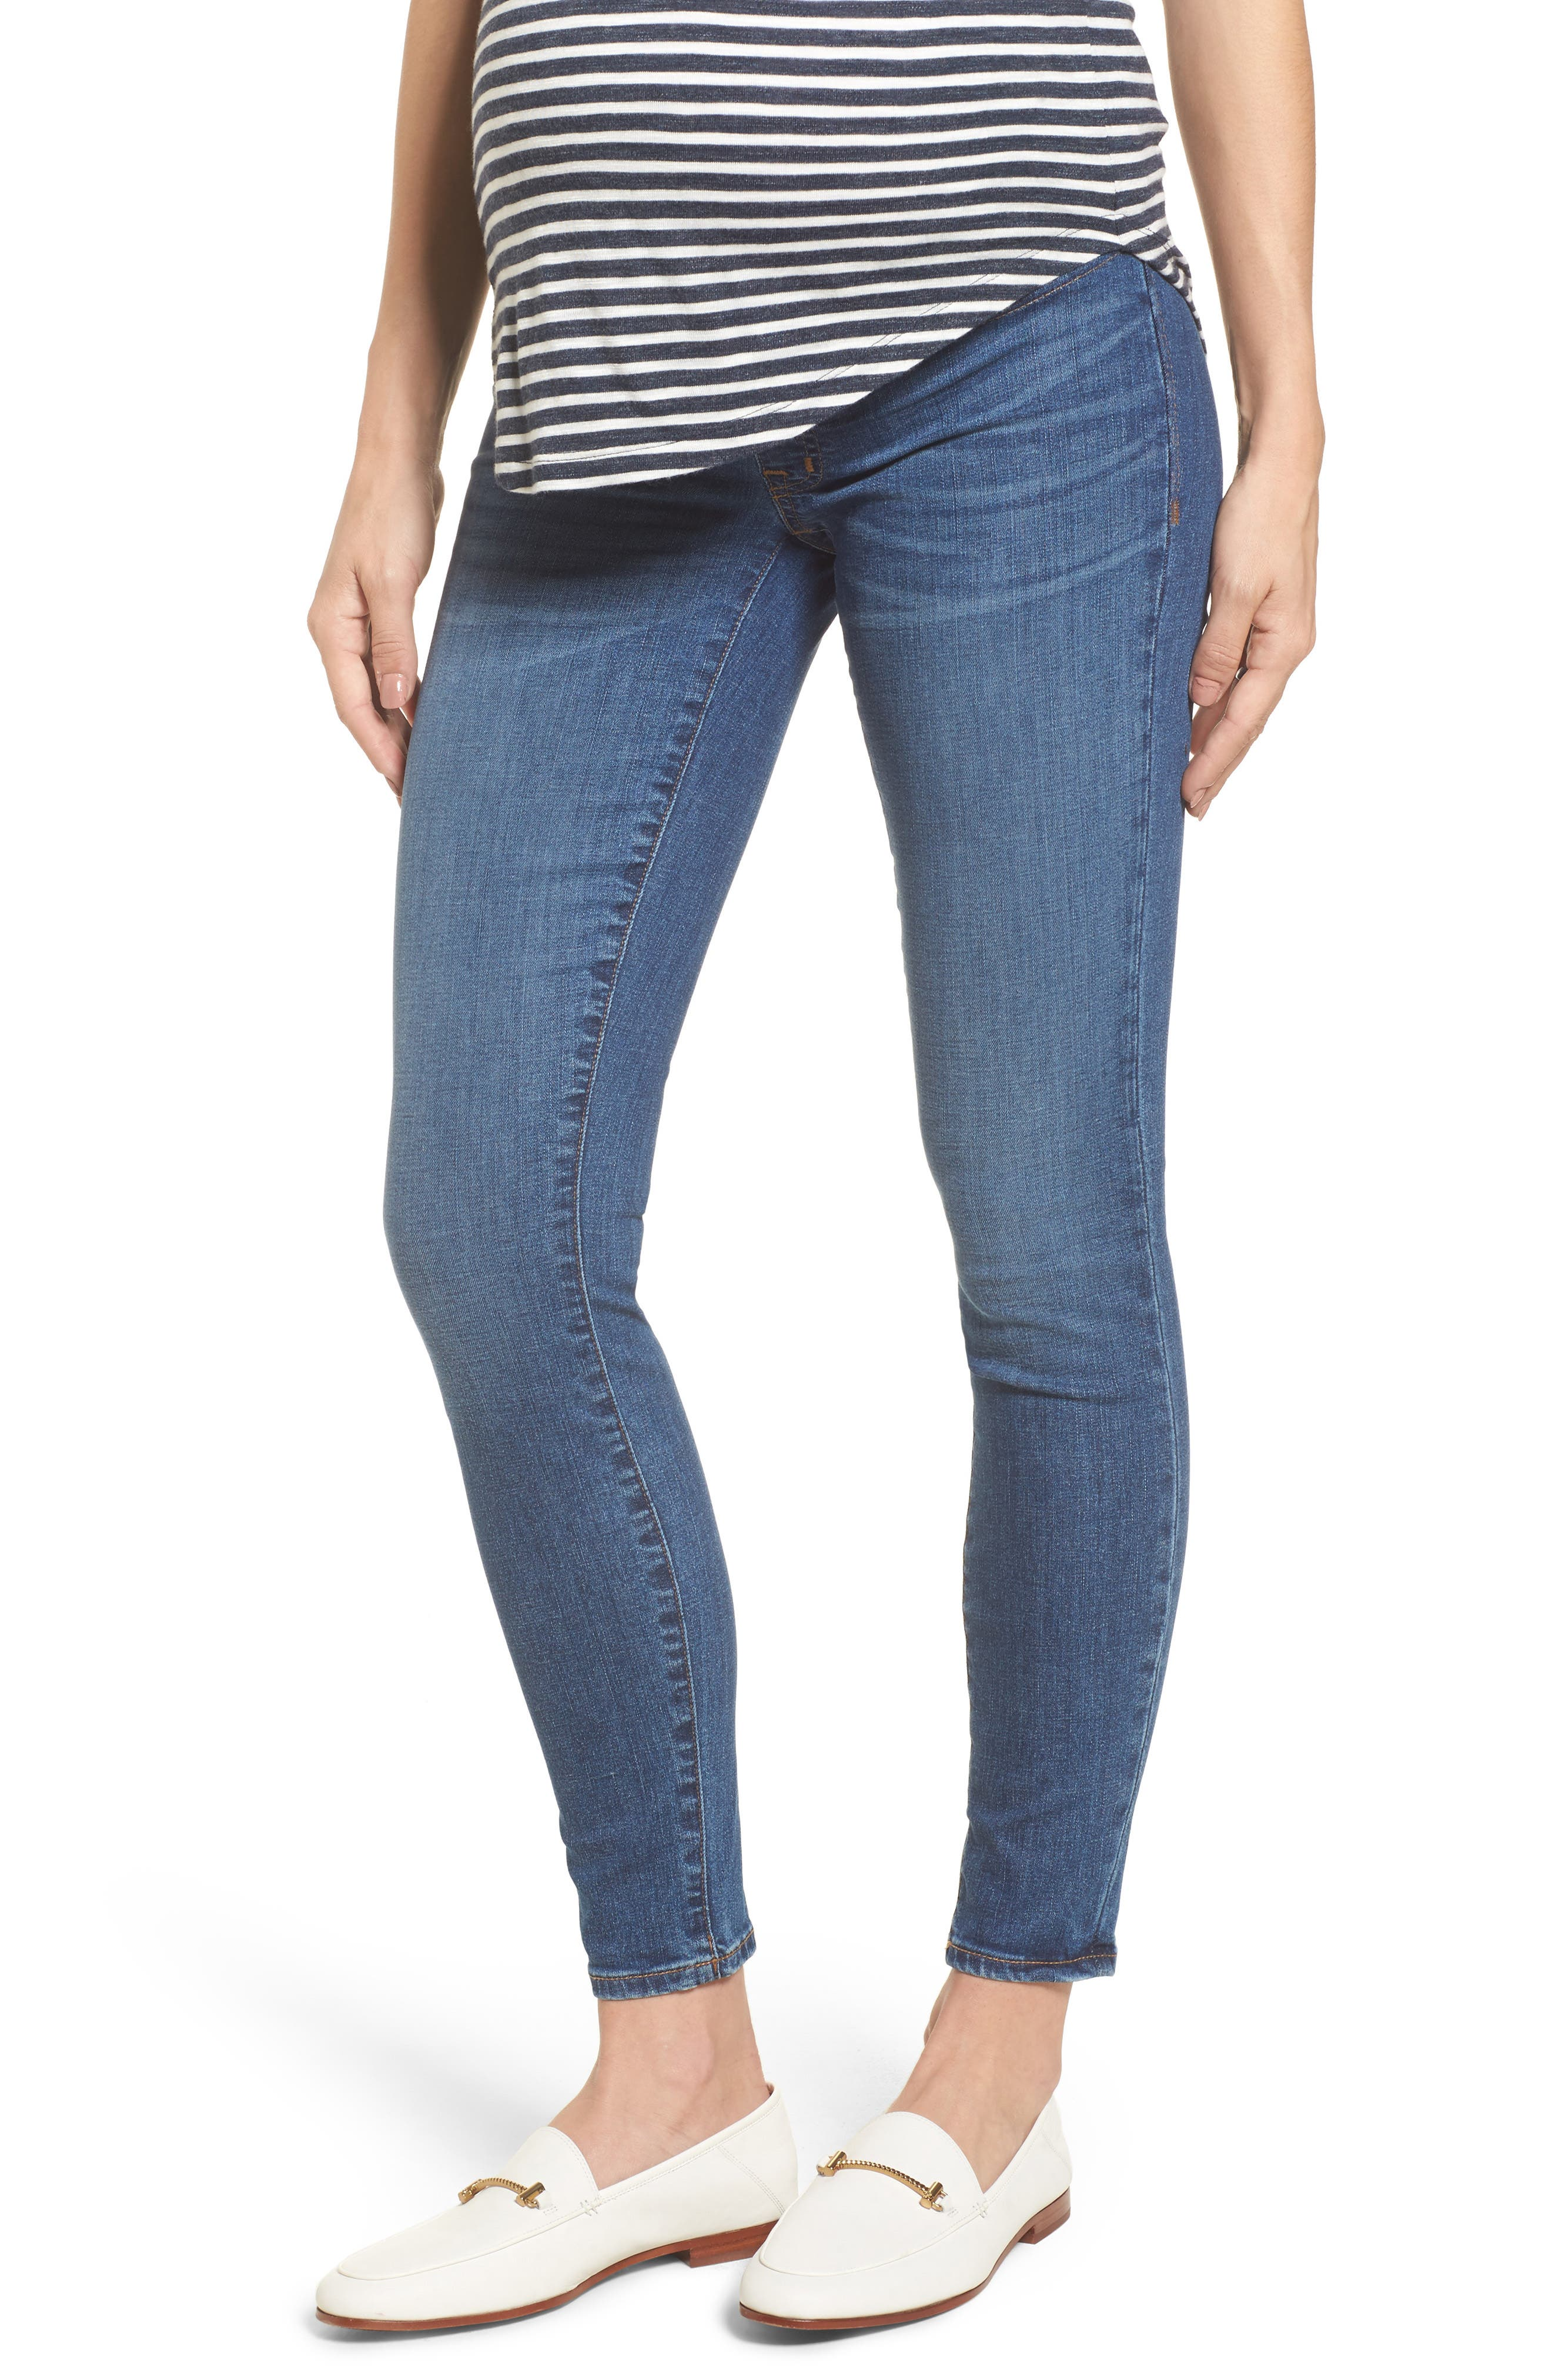 Madewell Maternity Skinny Jeans (Juliet)